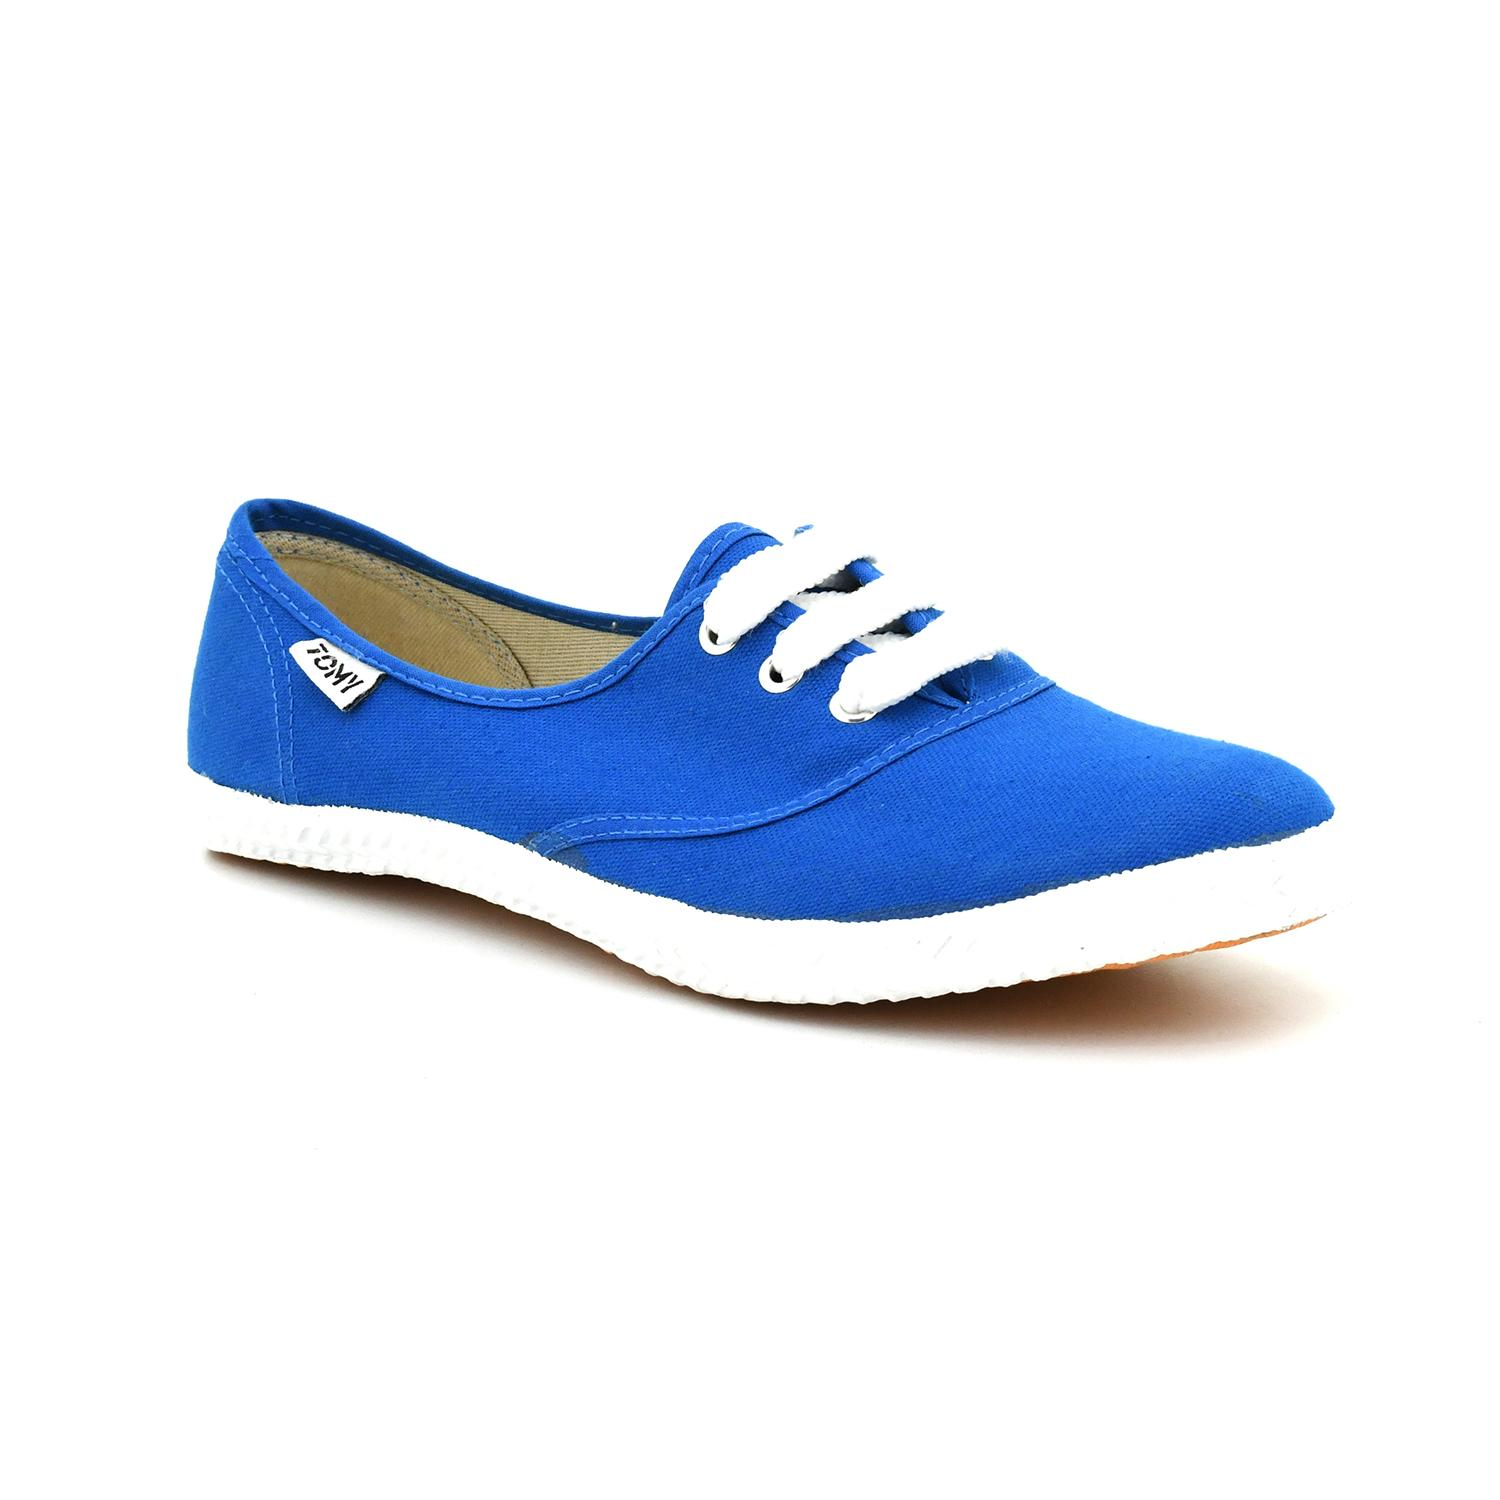 8479f267034b2 Tomy Takkies Blue Canvas Shoes For Men